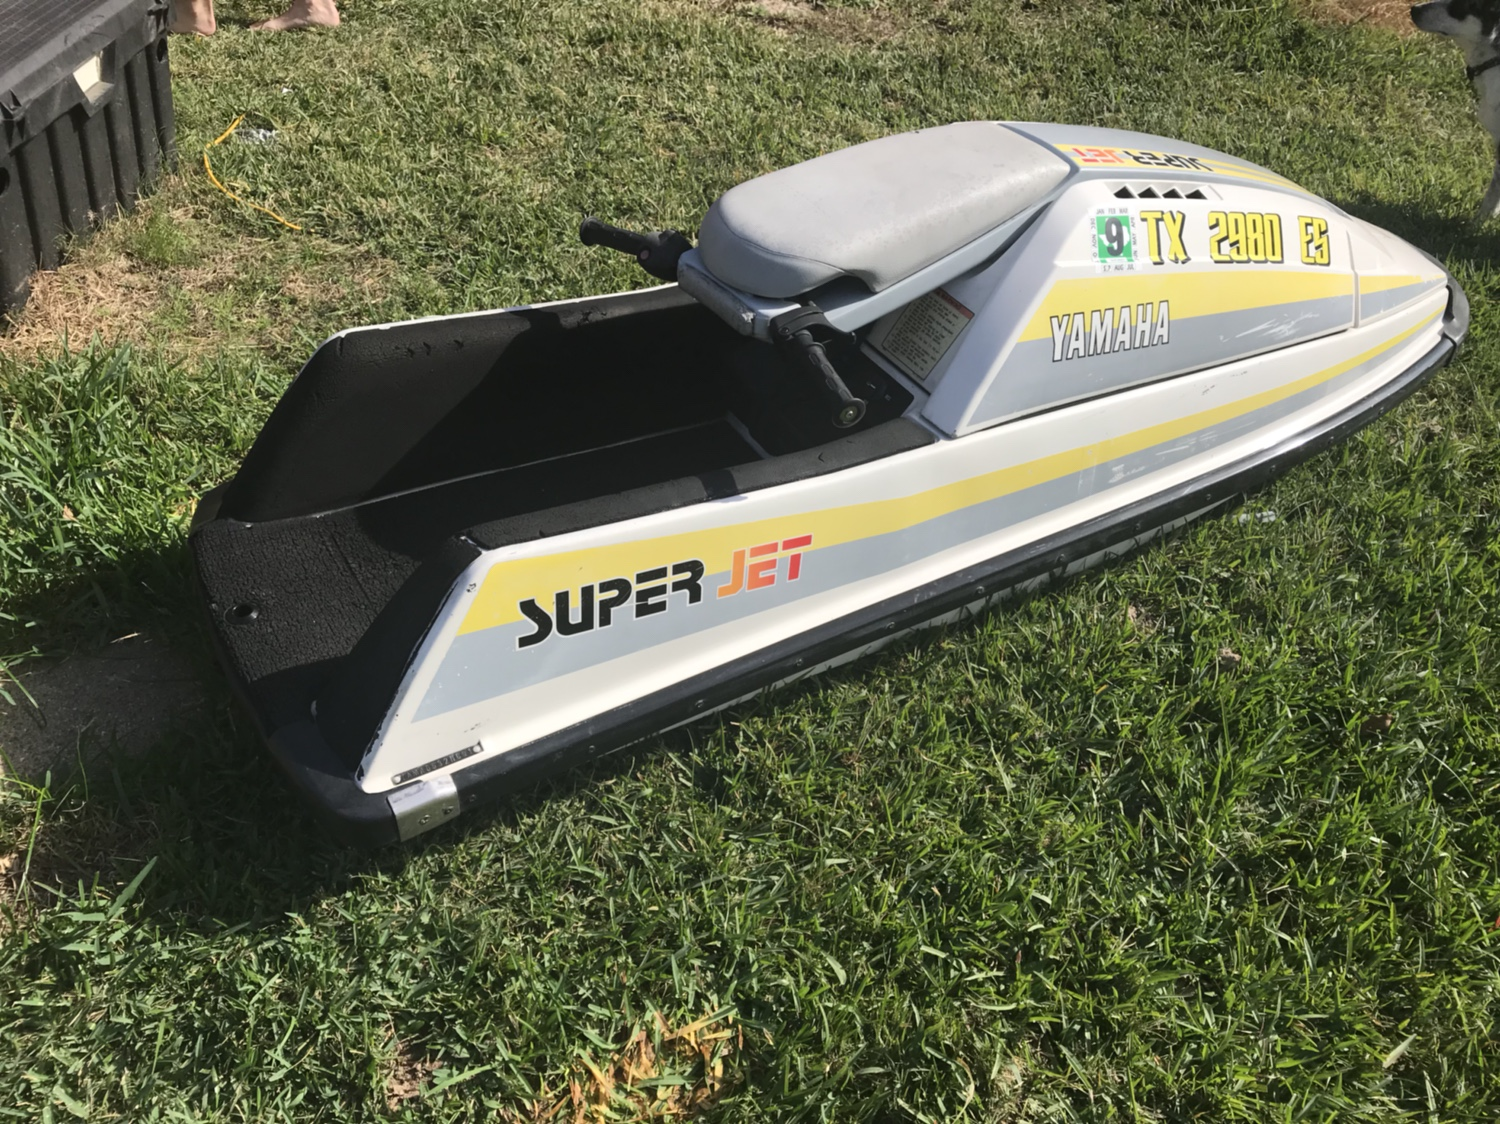 Bone Stock 1991 Superjet Runs And Registered Till 2019 Clean Ski Only Selling Because I Upgraded